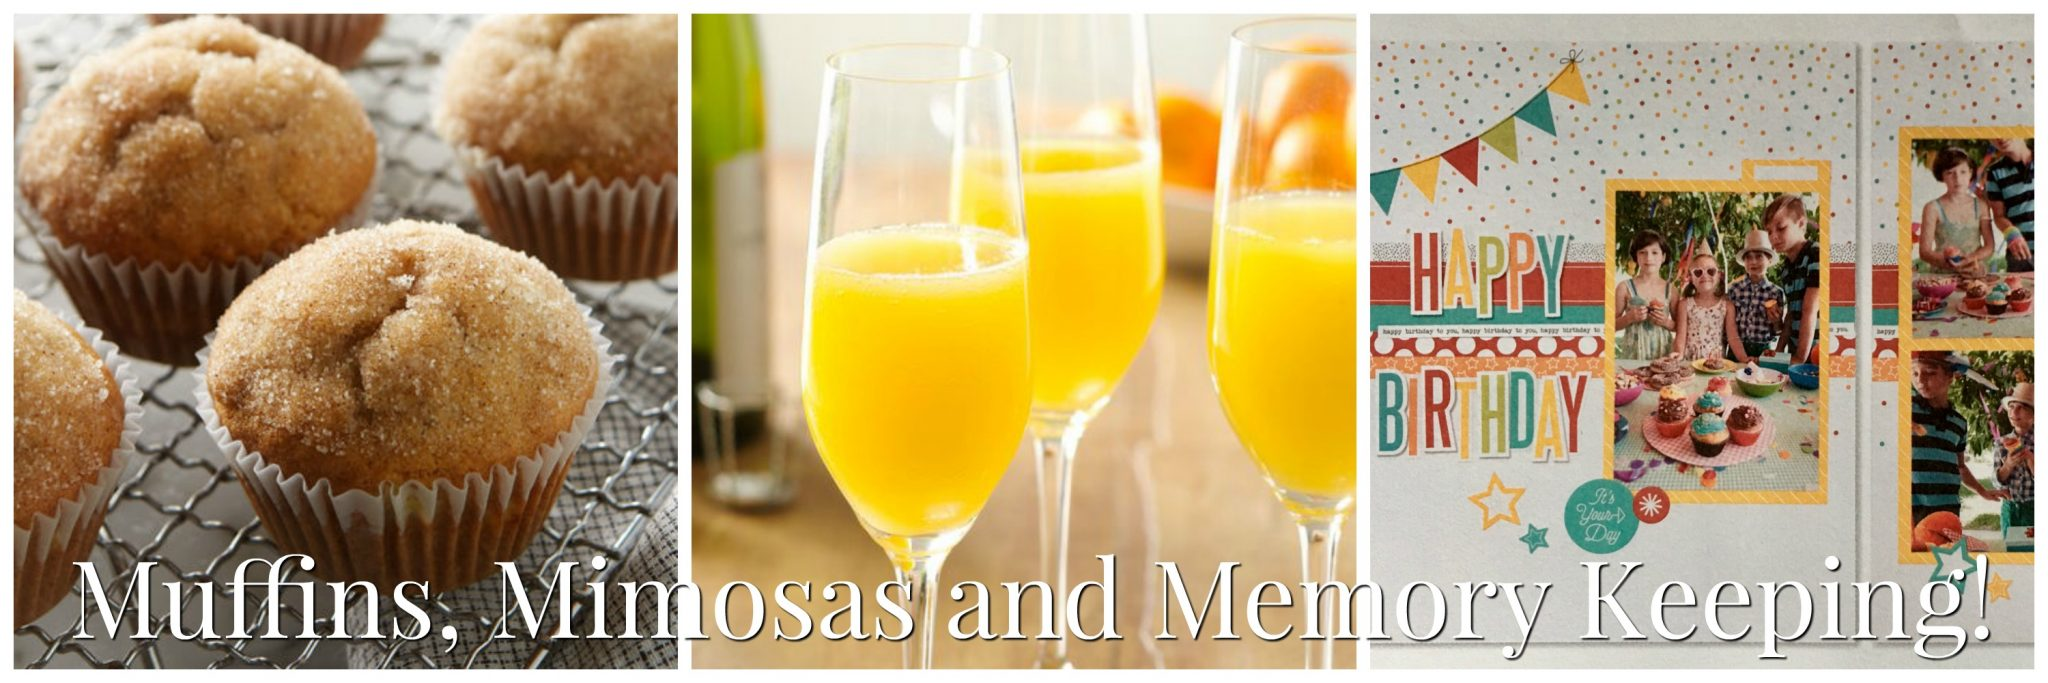 Muffins, Mimosas & Memory Keeping Event